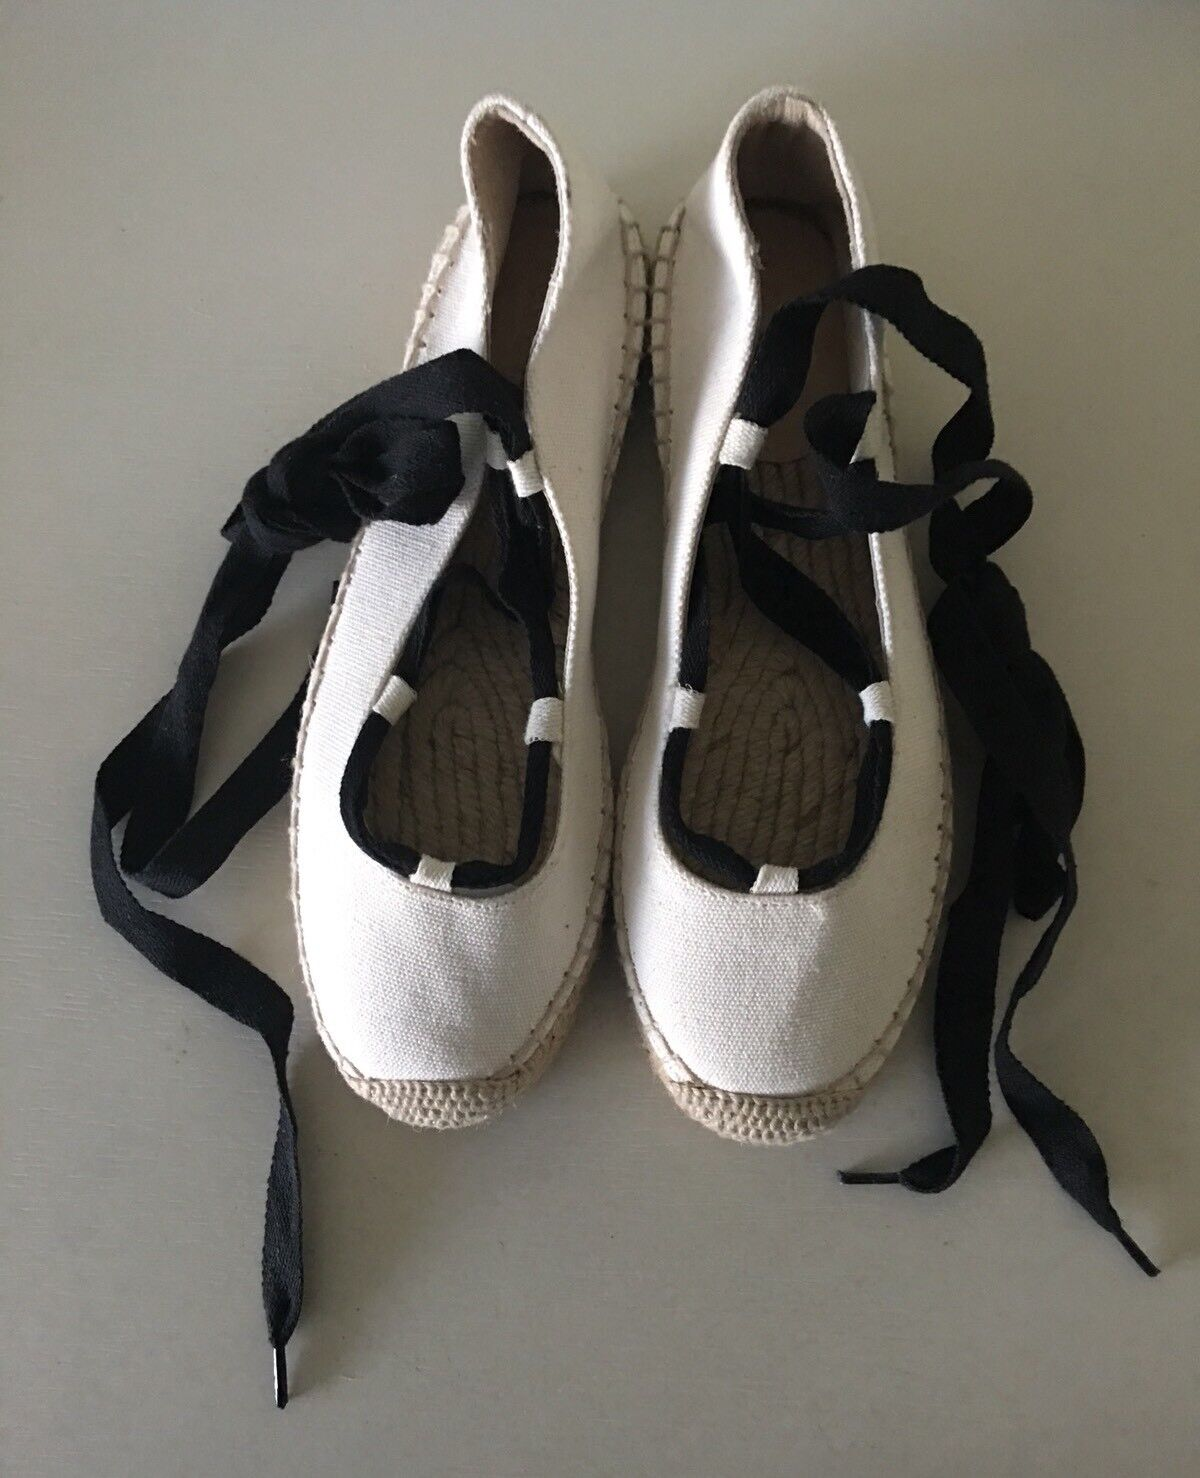 J.crew Women's Canvas Lace-up Espadrilles In Fresh Cream Size 6 6 6 Style G1345 b9cf78